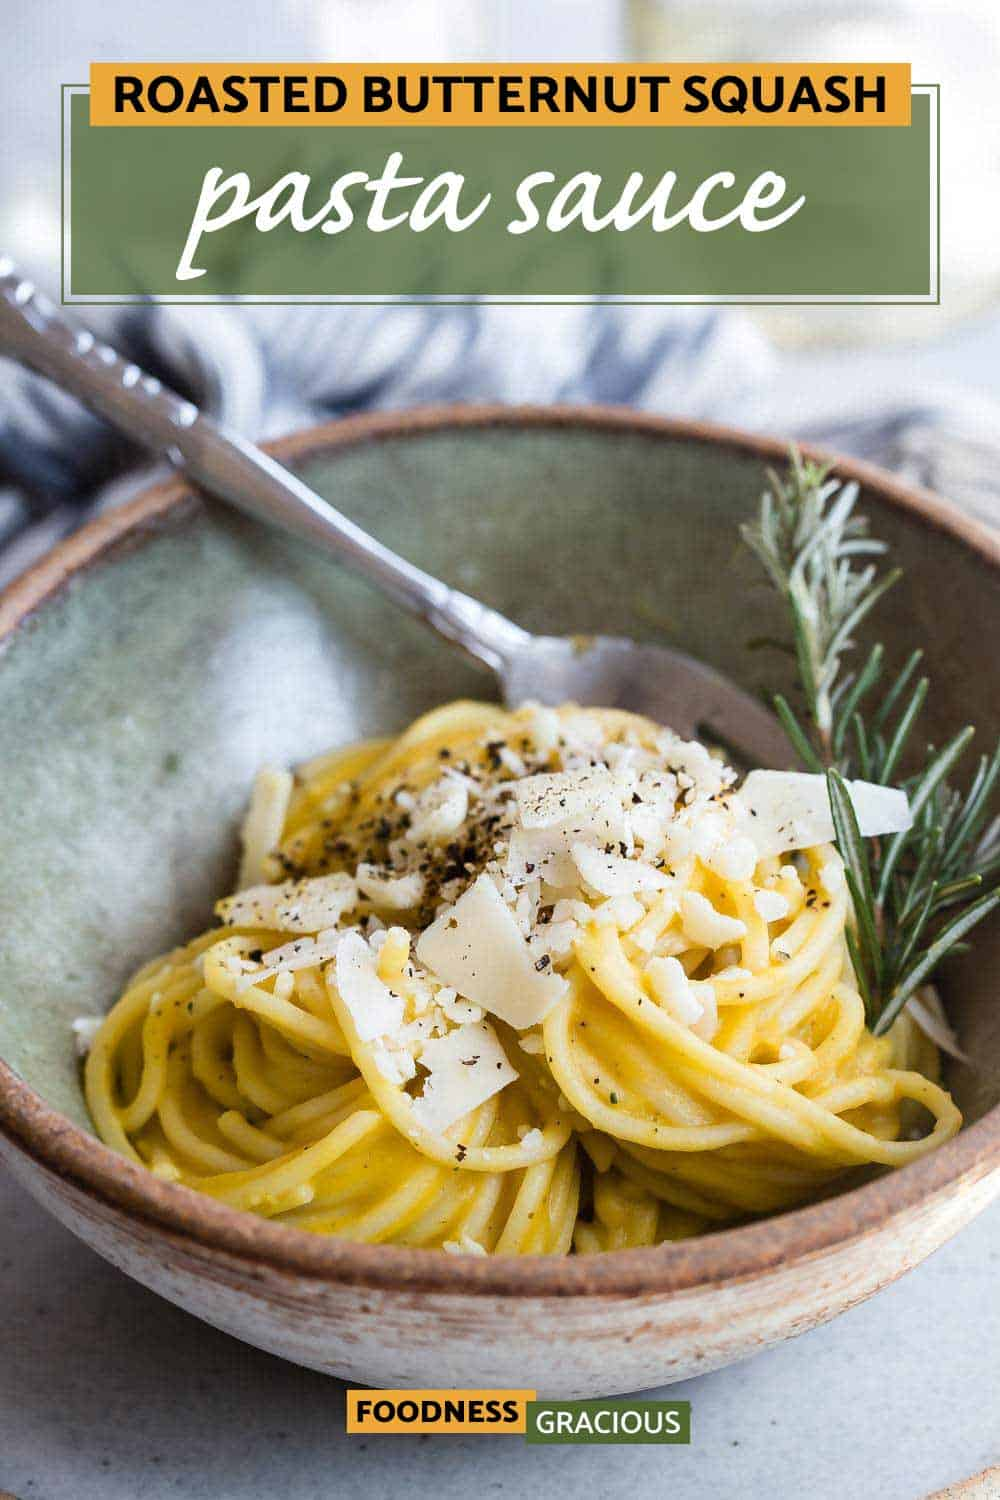 roasted butternut squash pasta sauce in a bowl